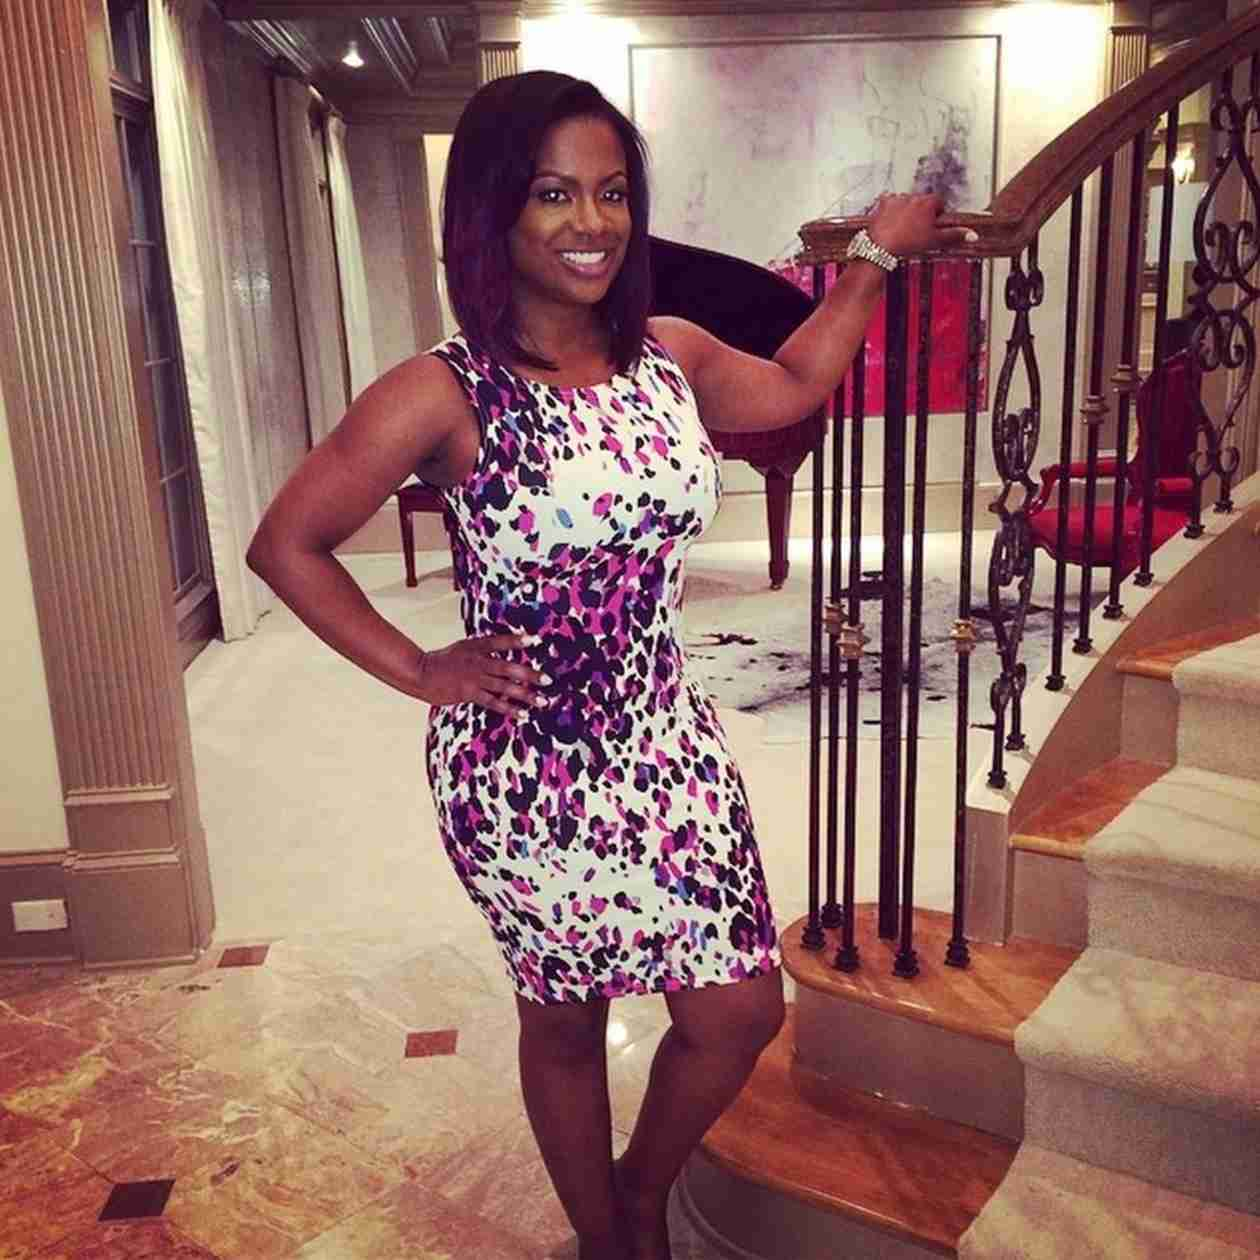 Kandi Burruss Rocks a Tight Dress and Looks Fabulous! (PHOTO)